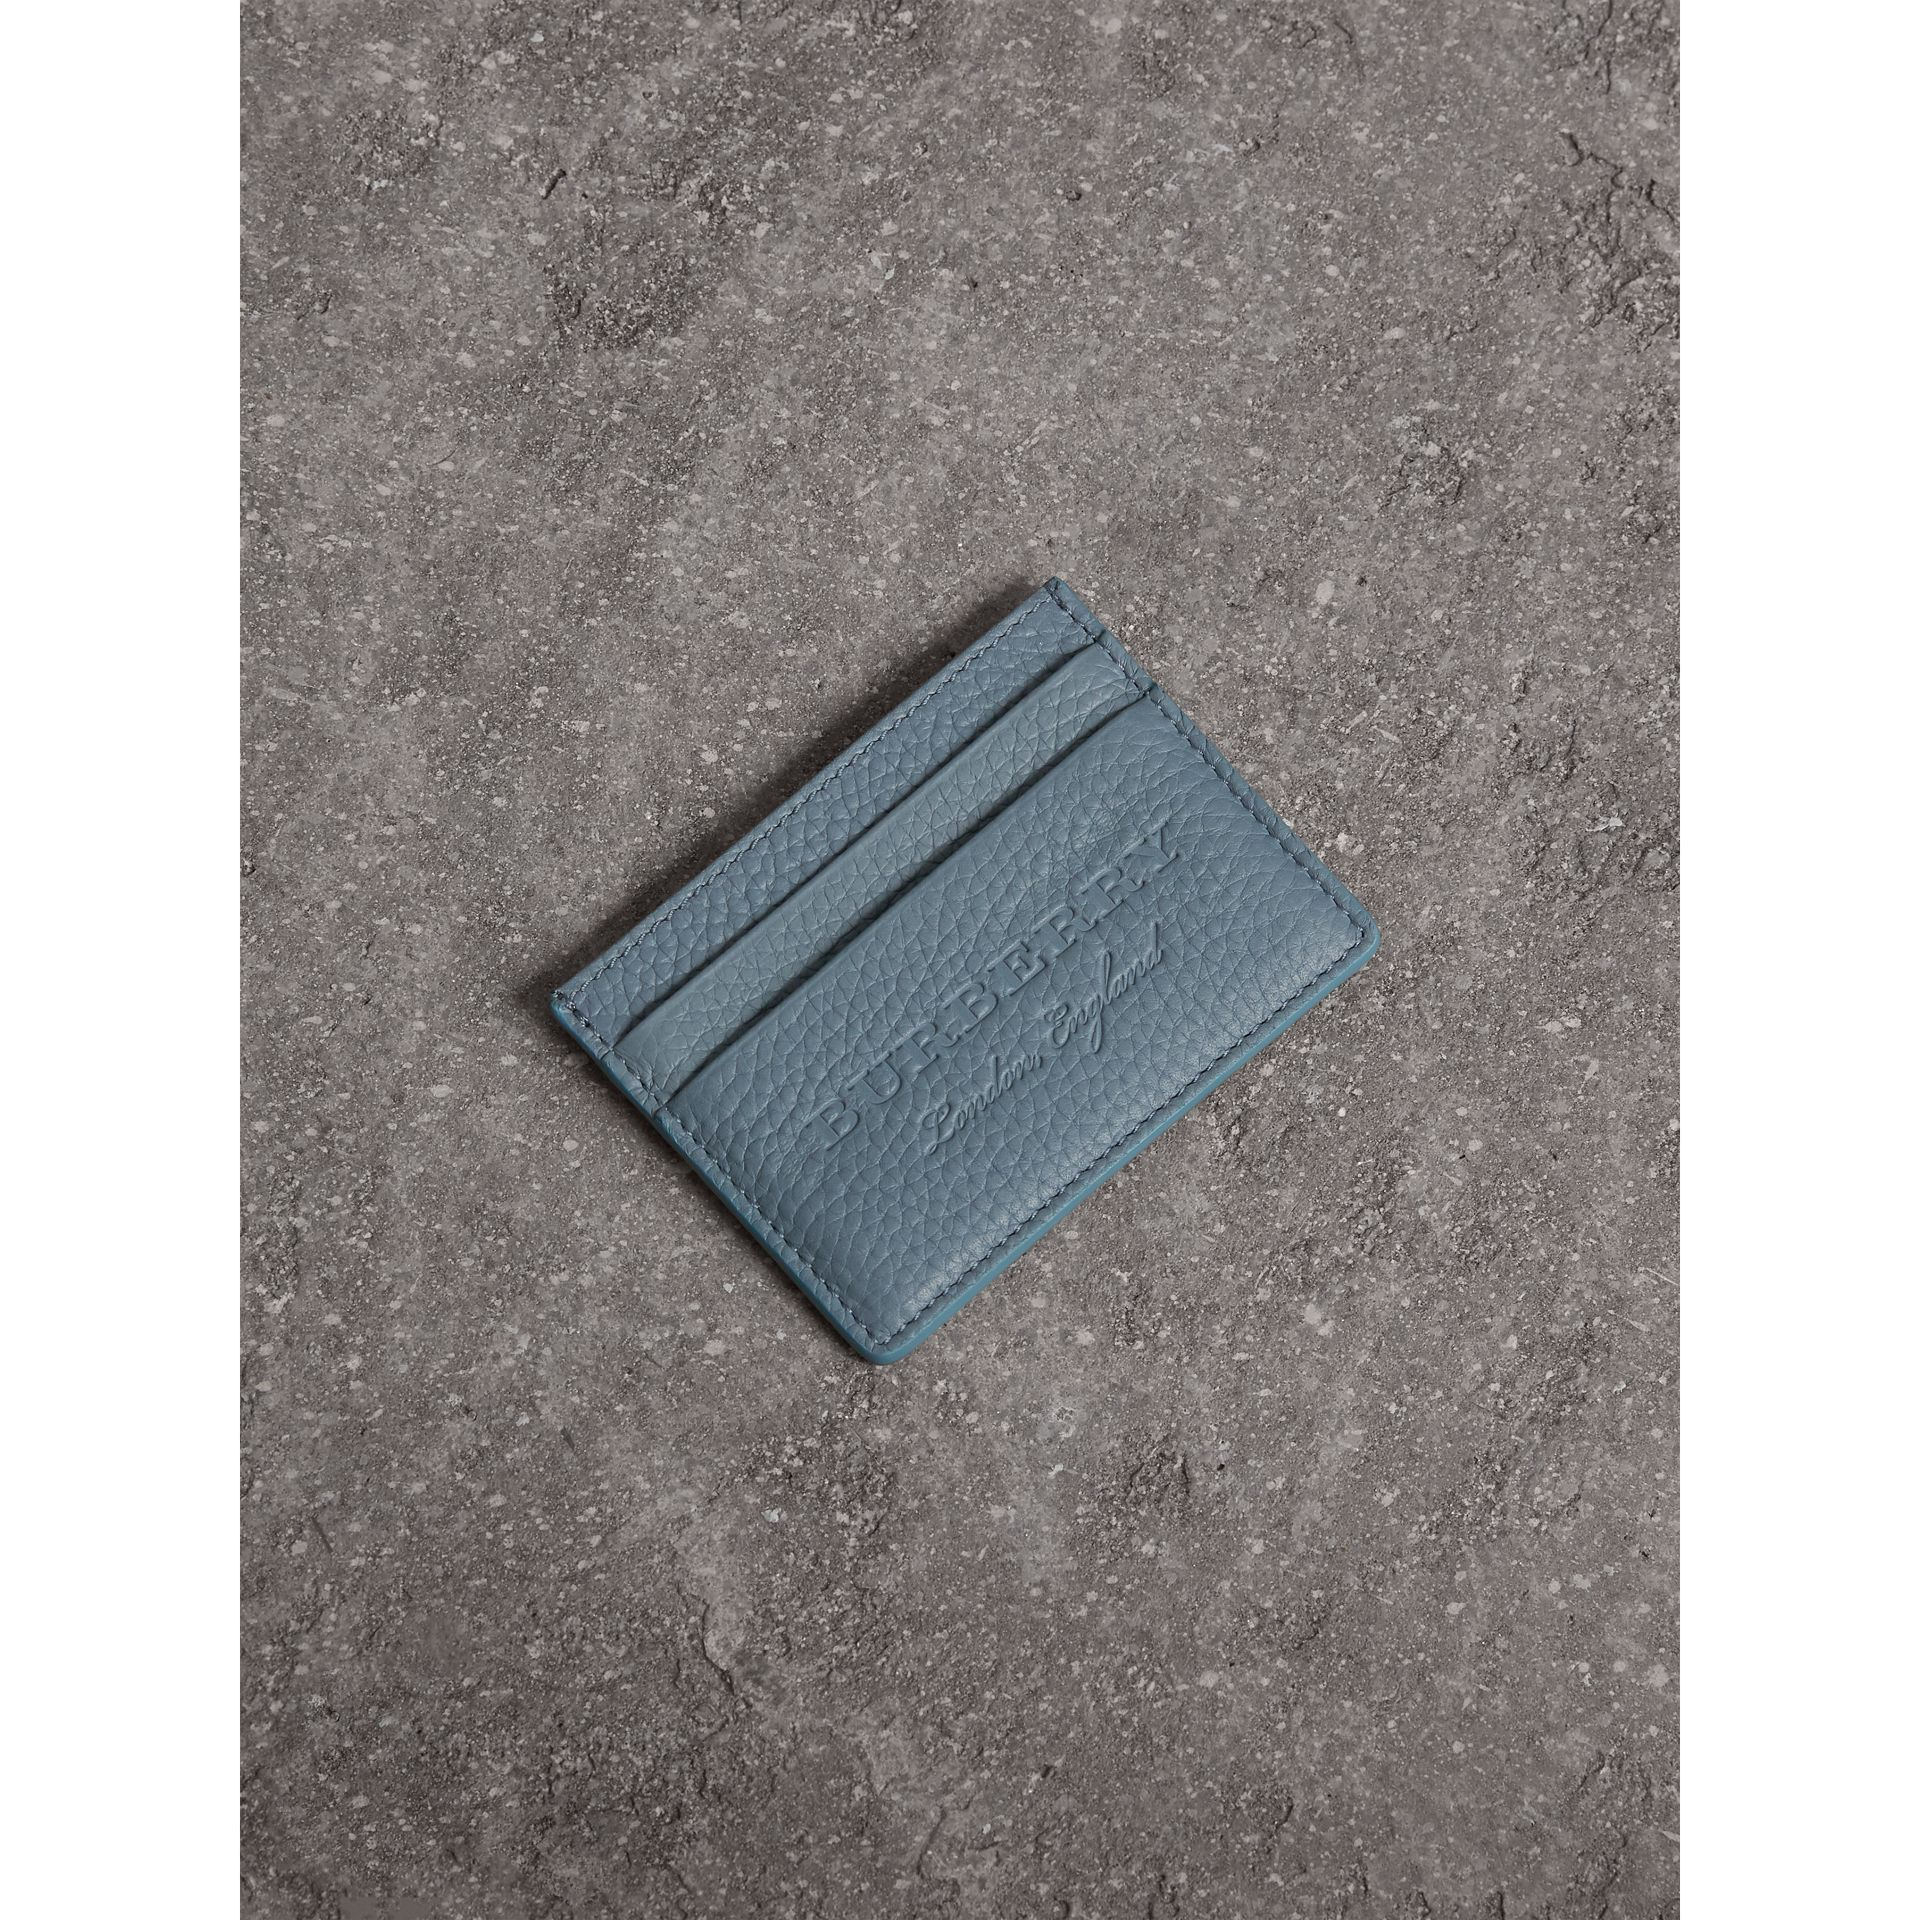 Embossed Textured Leather Card Case in Dusty Teal Blue - Women | Burberry Singapore - gallery image 1